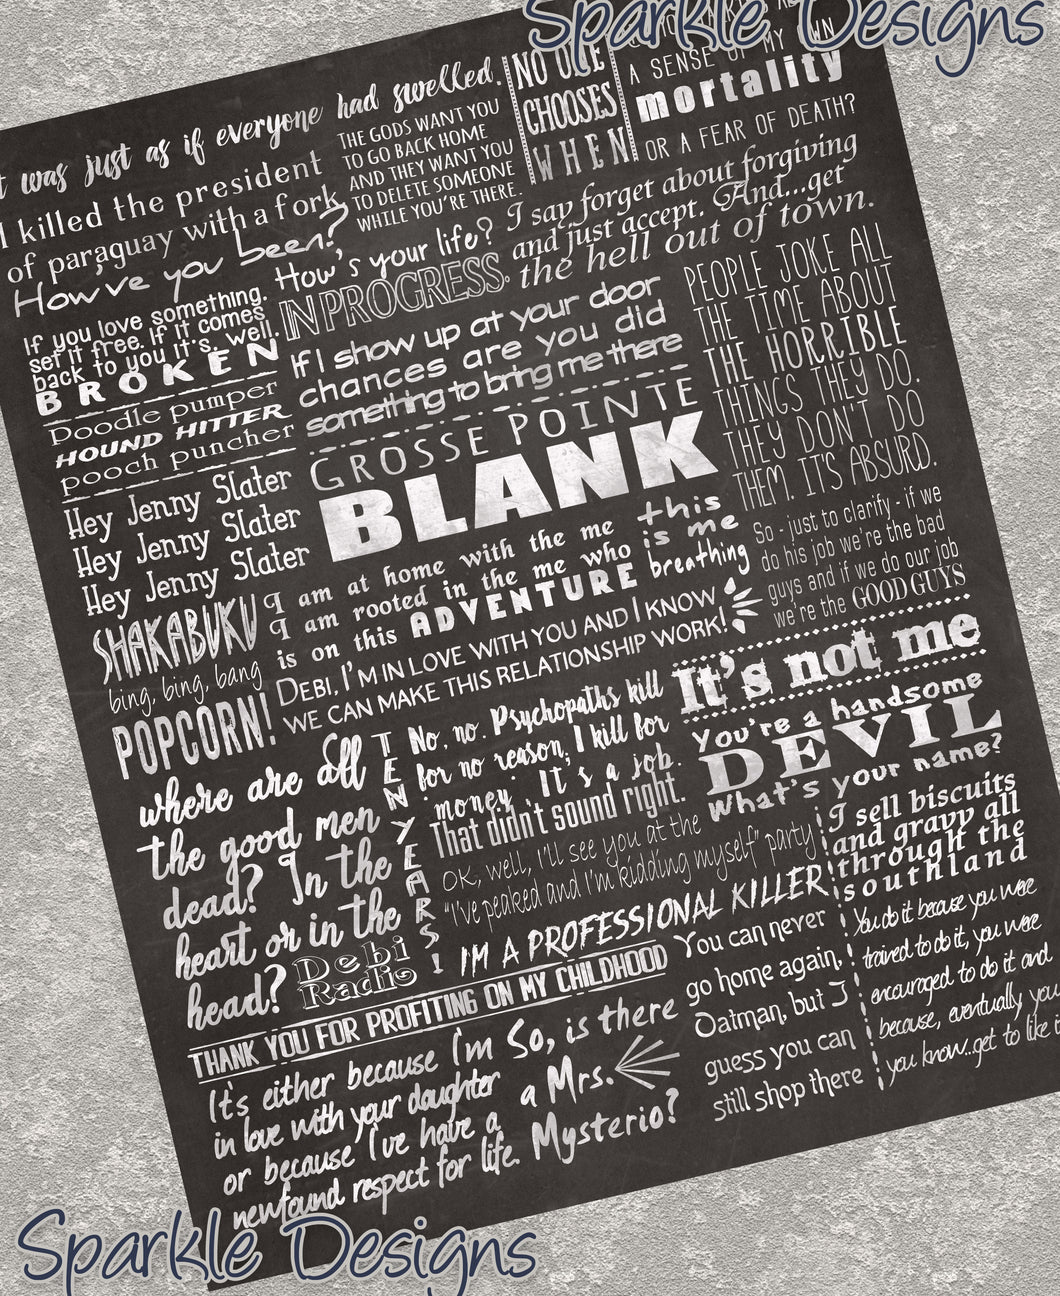 Grosse Pointe Blank Quotes 127 Art Print